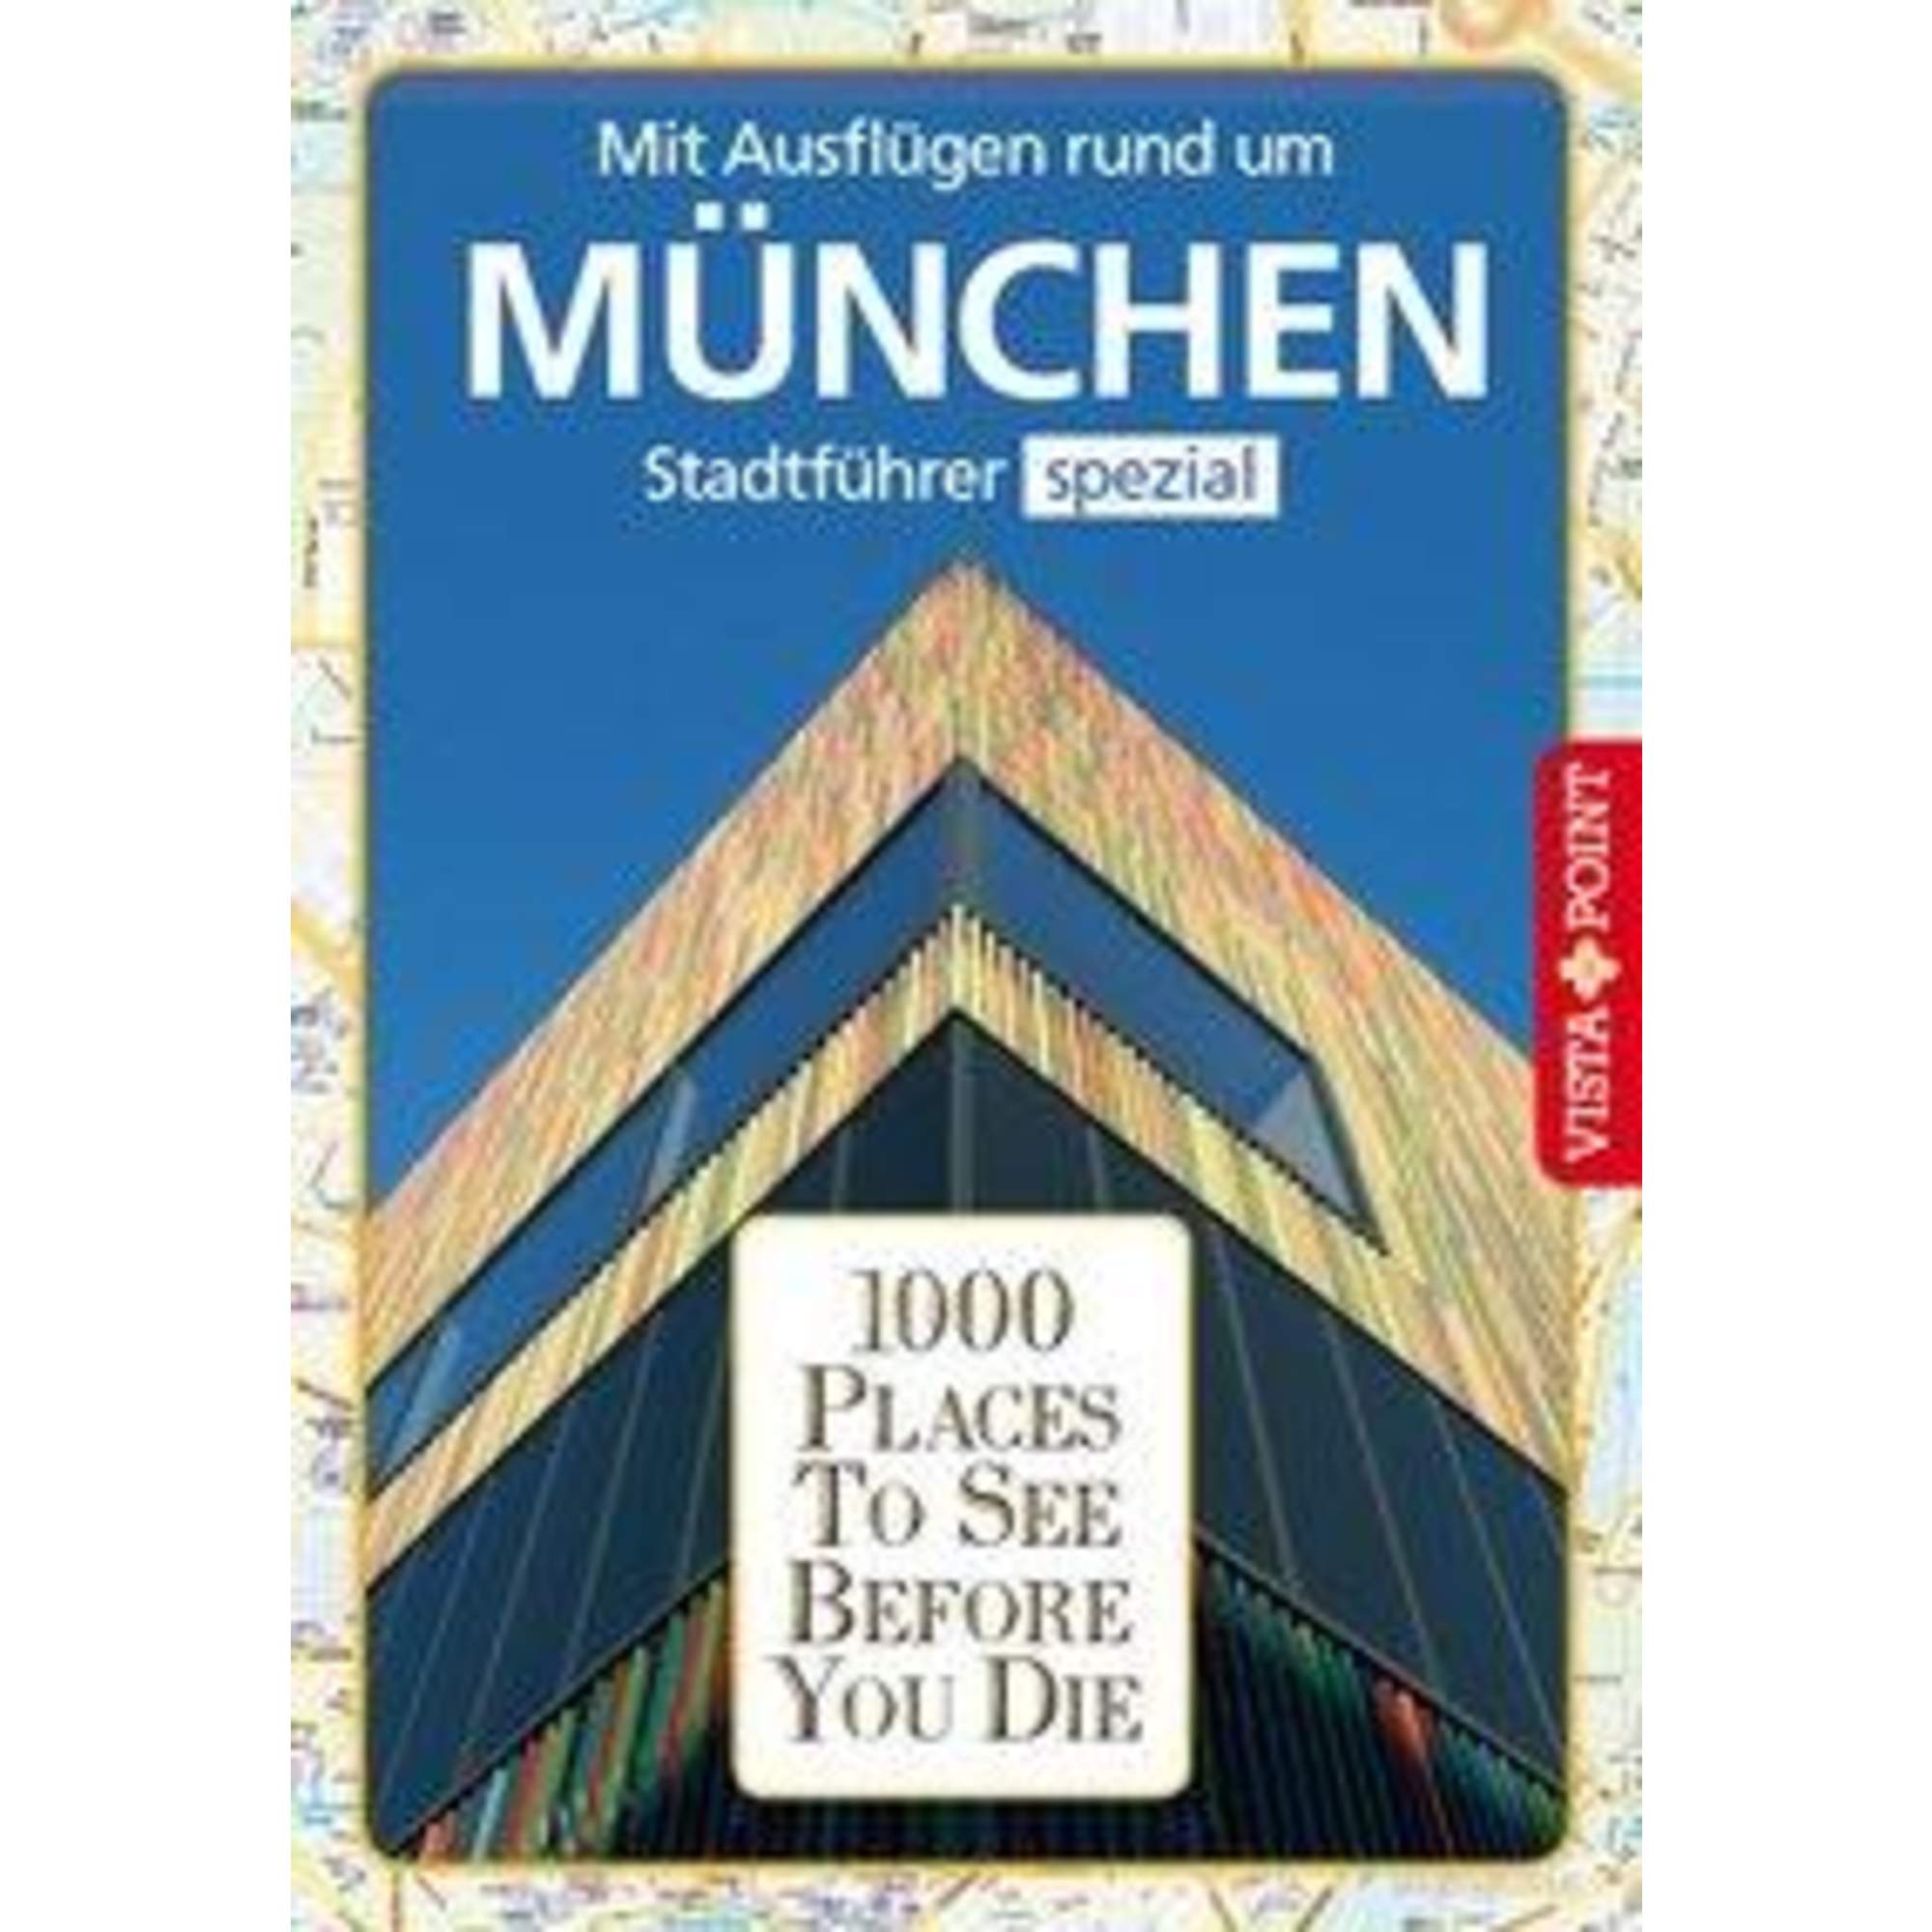 1000 Places To See Before You Die. München, 12,90 Euro